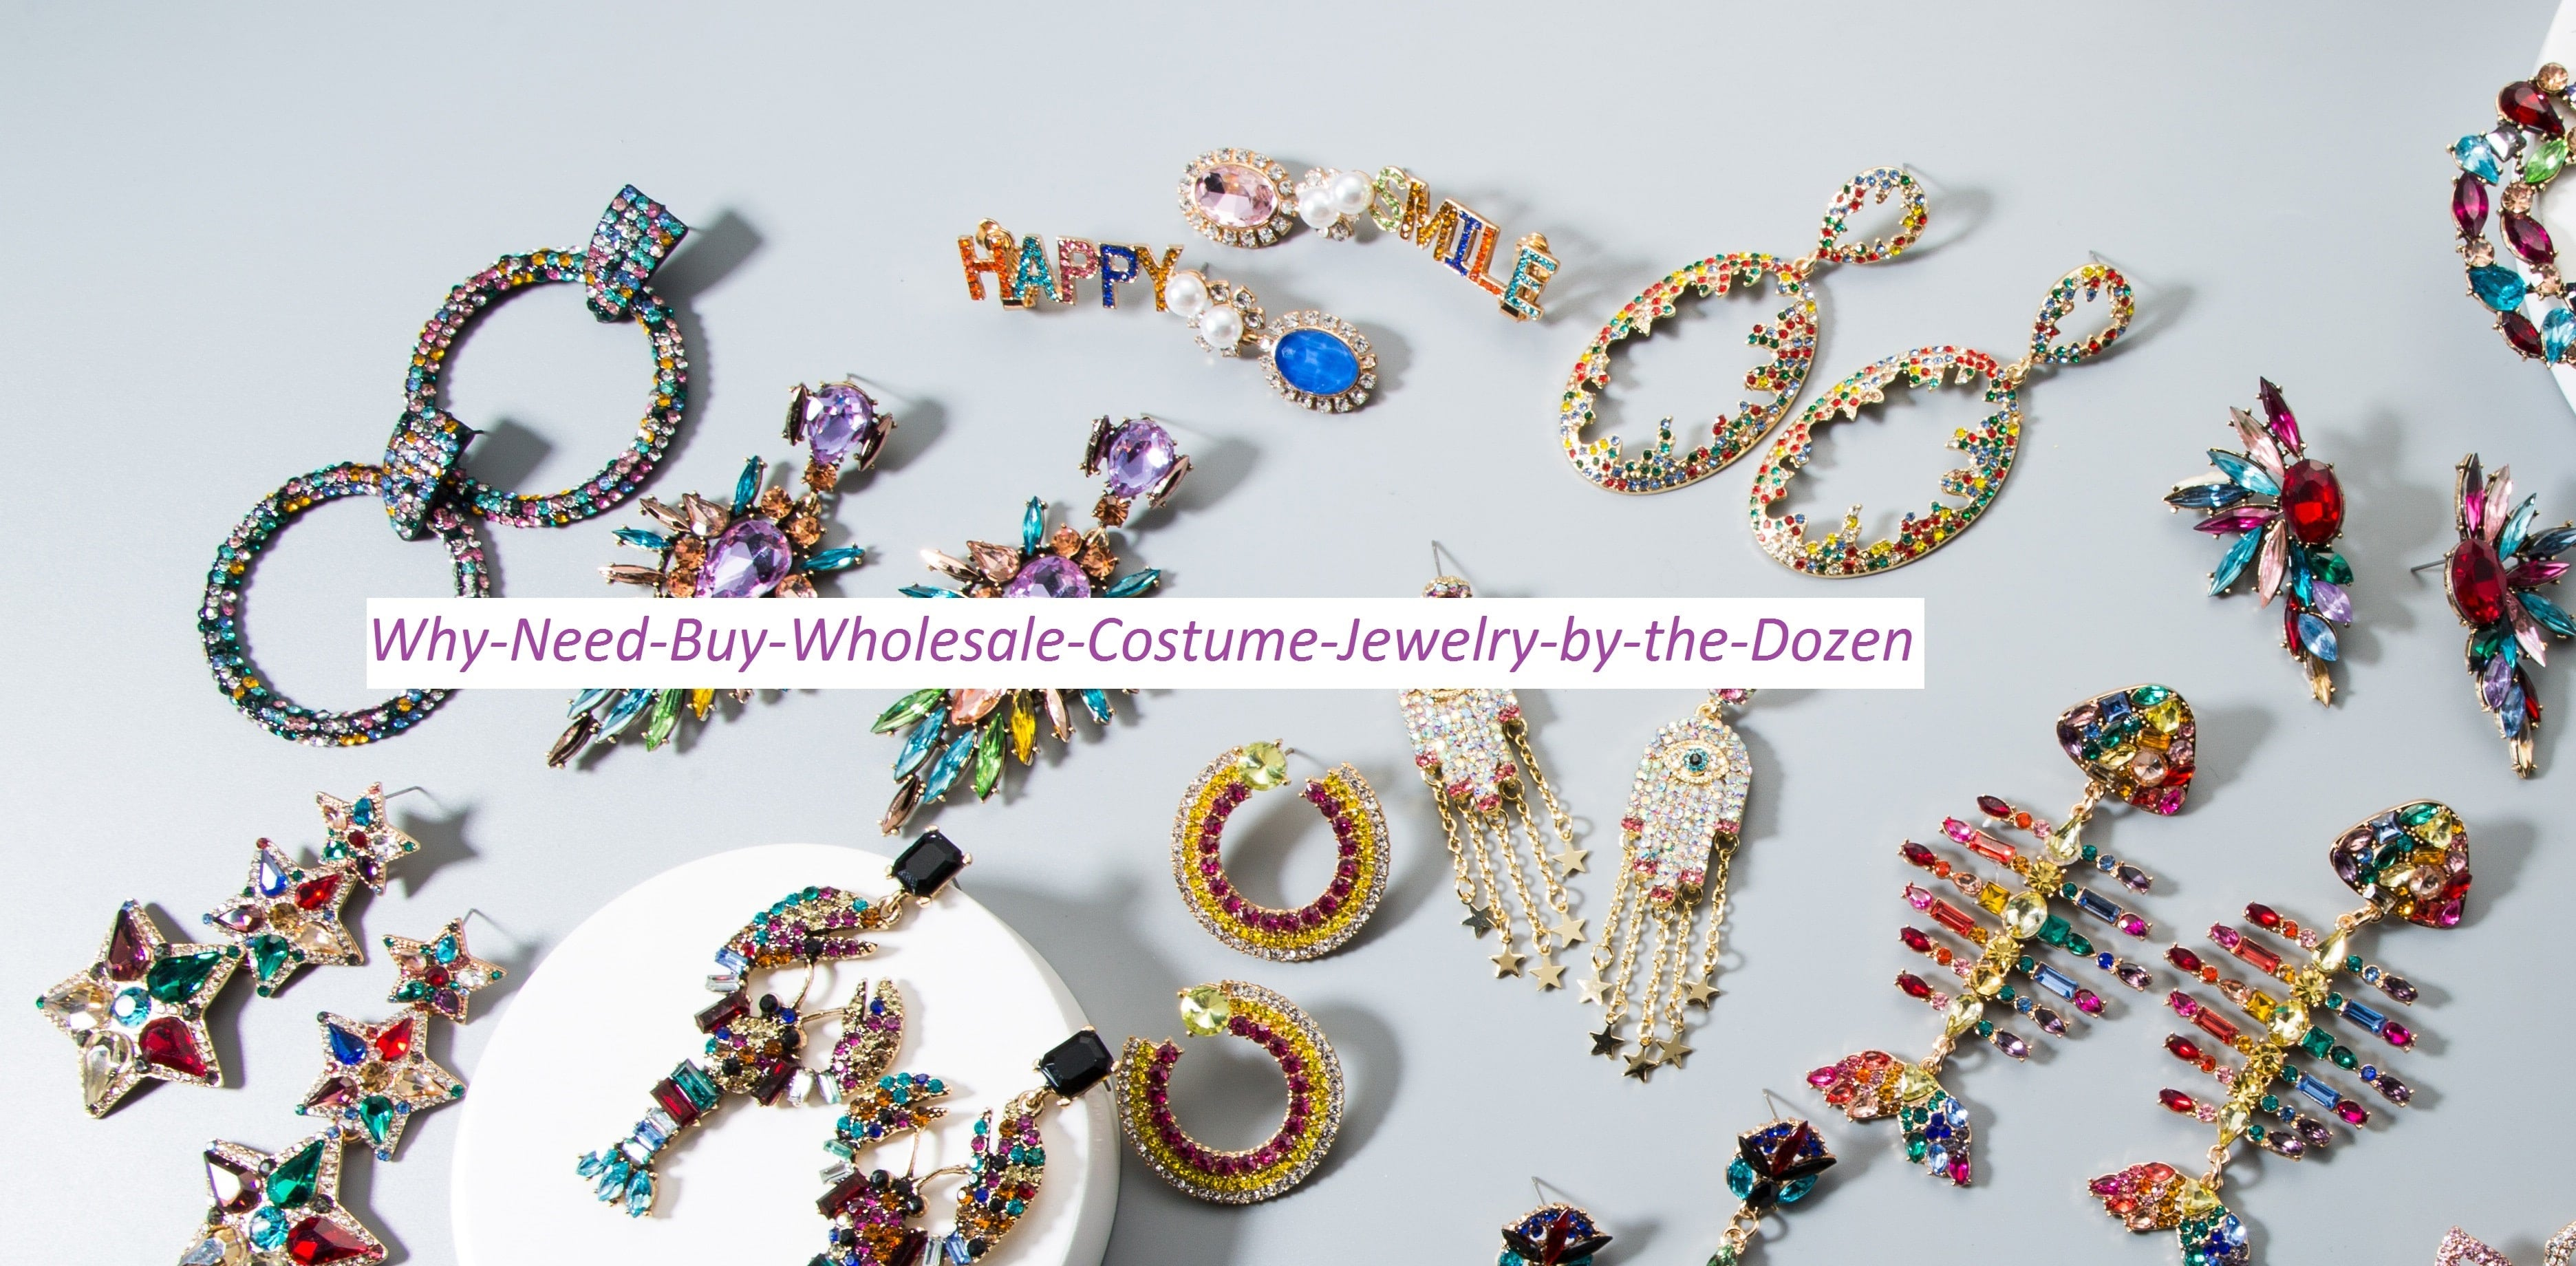 Why Need Buy Wholesale Costume Jewelry by the Dozen